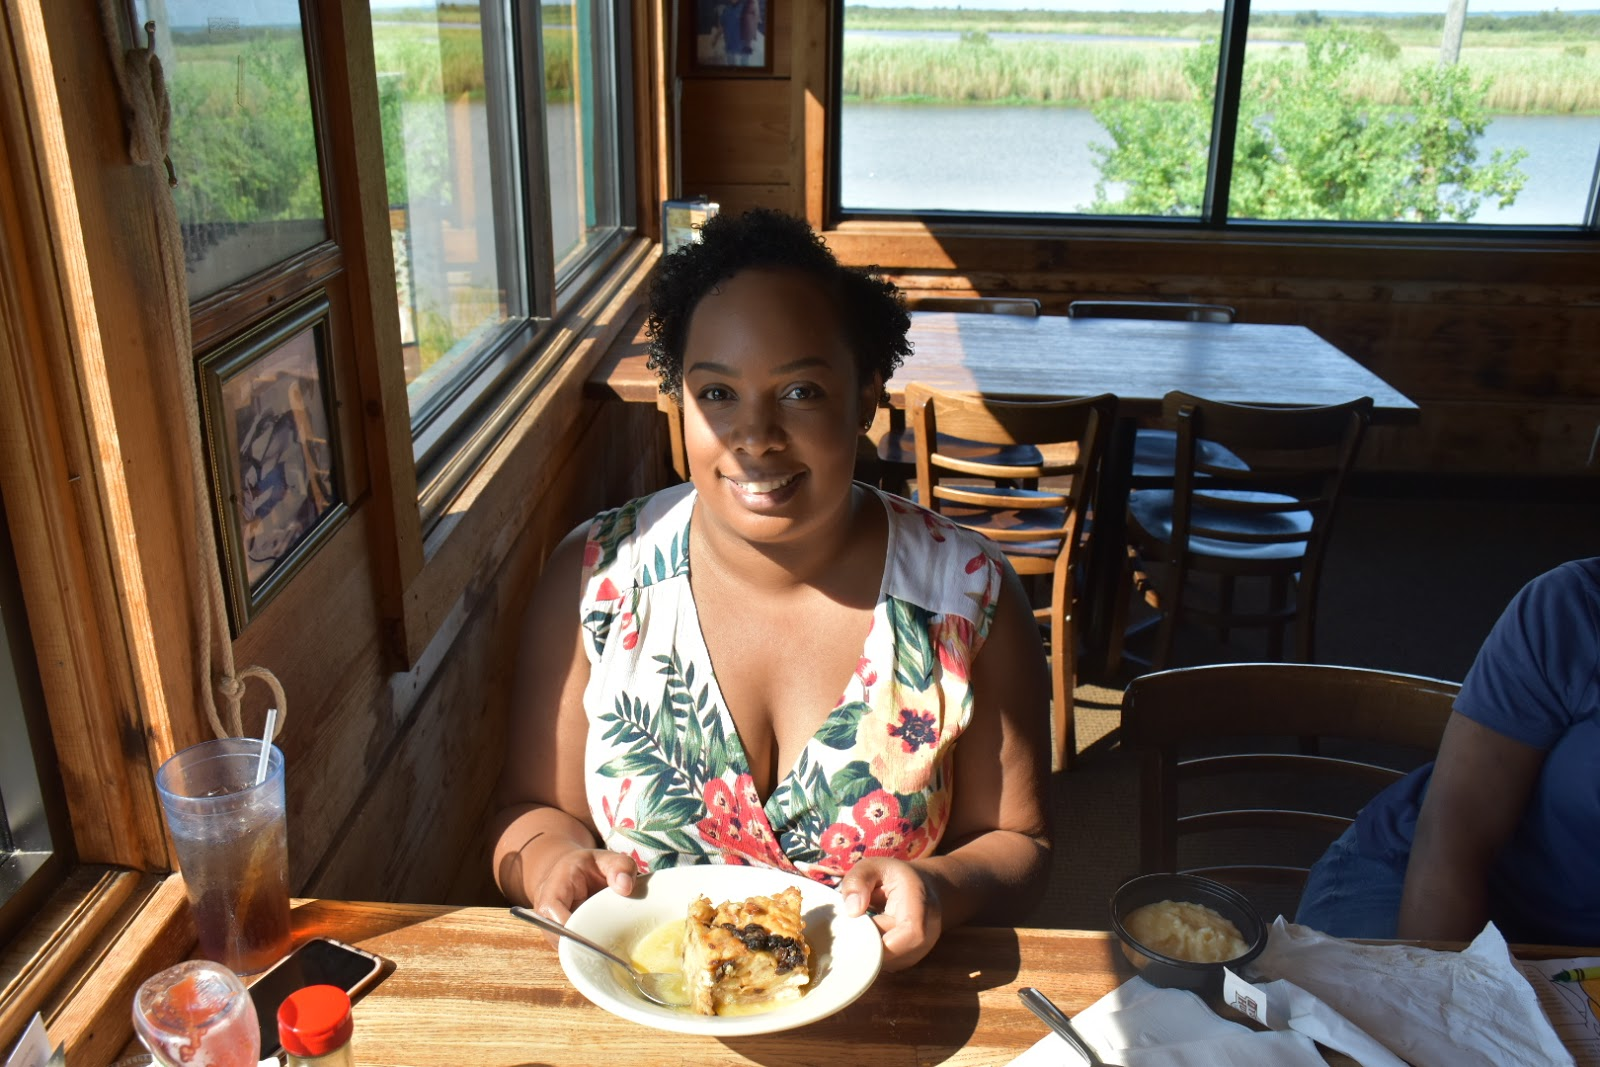 My Birthday Lunch at The Original Oyster House Seafood Restaurant  via  www.productreviewmom.com